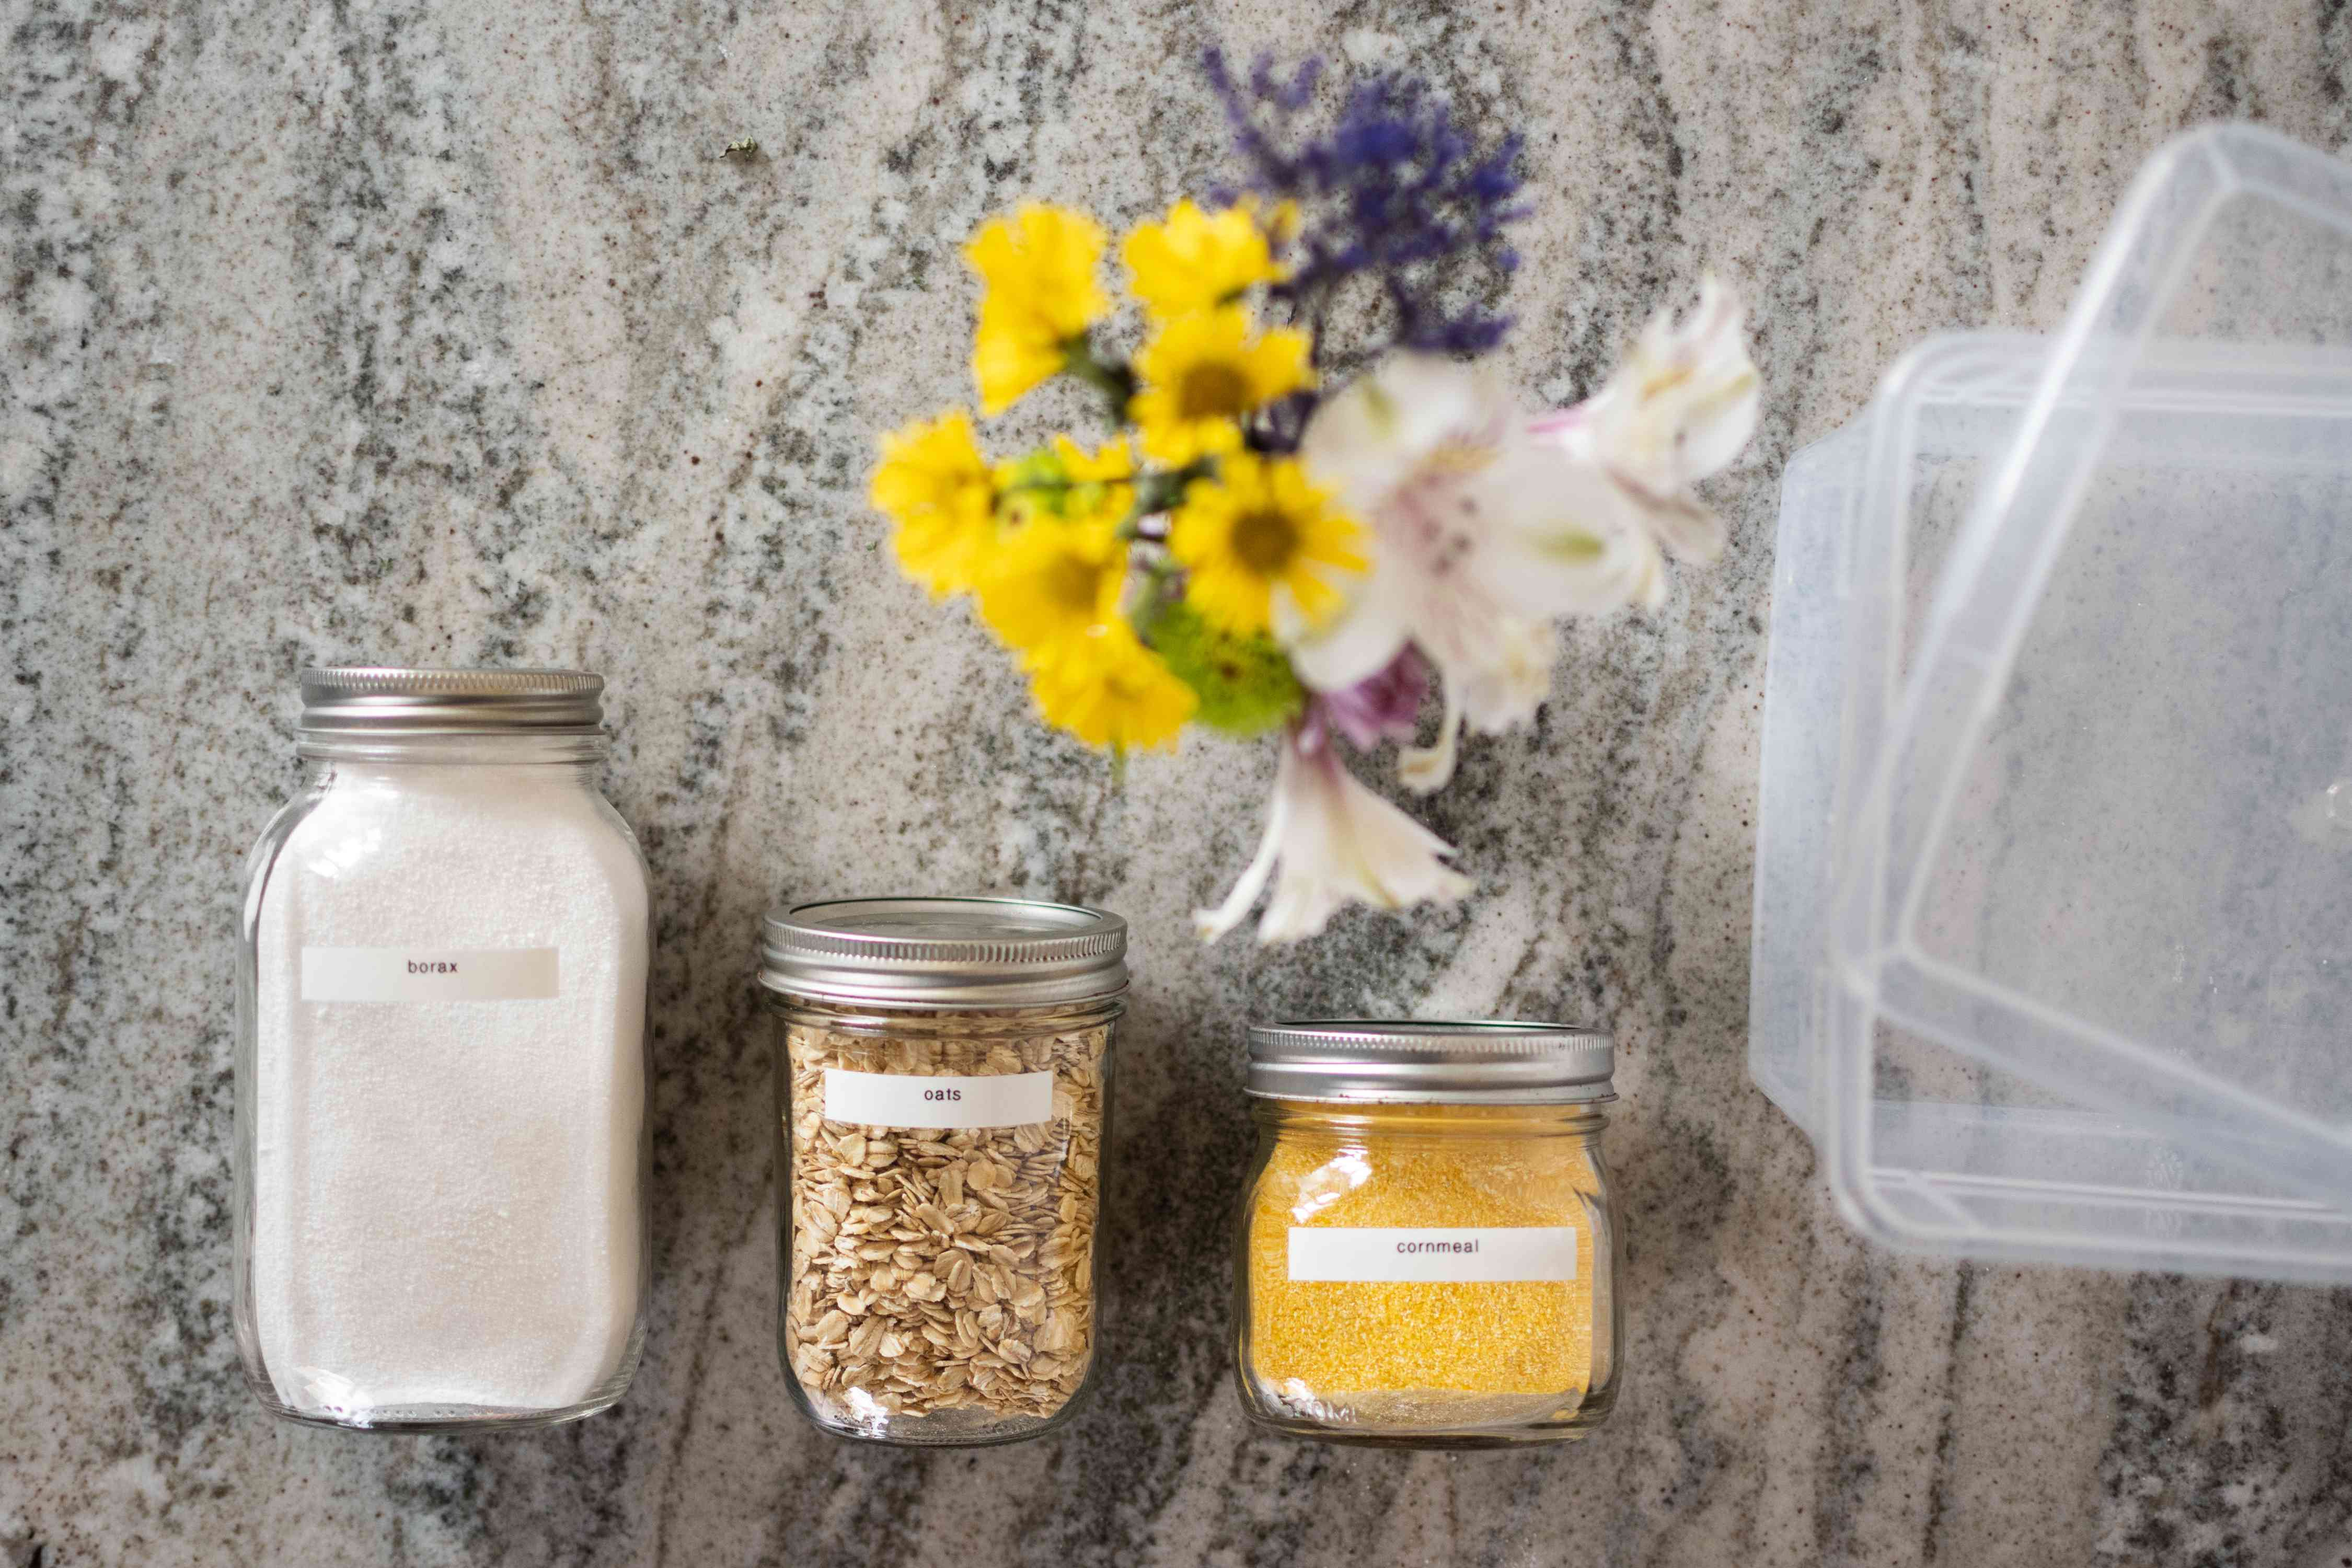 Three glass jars with ingredients to dry flowers next to plastic bin and flowers